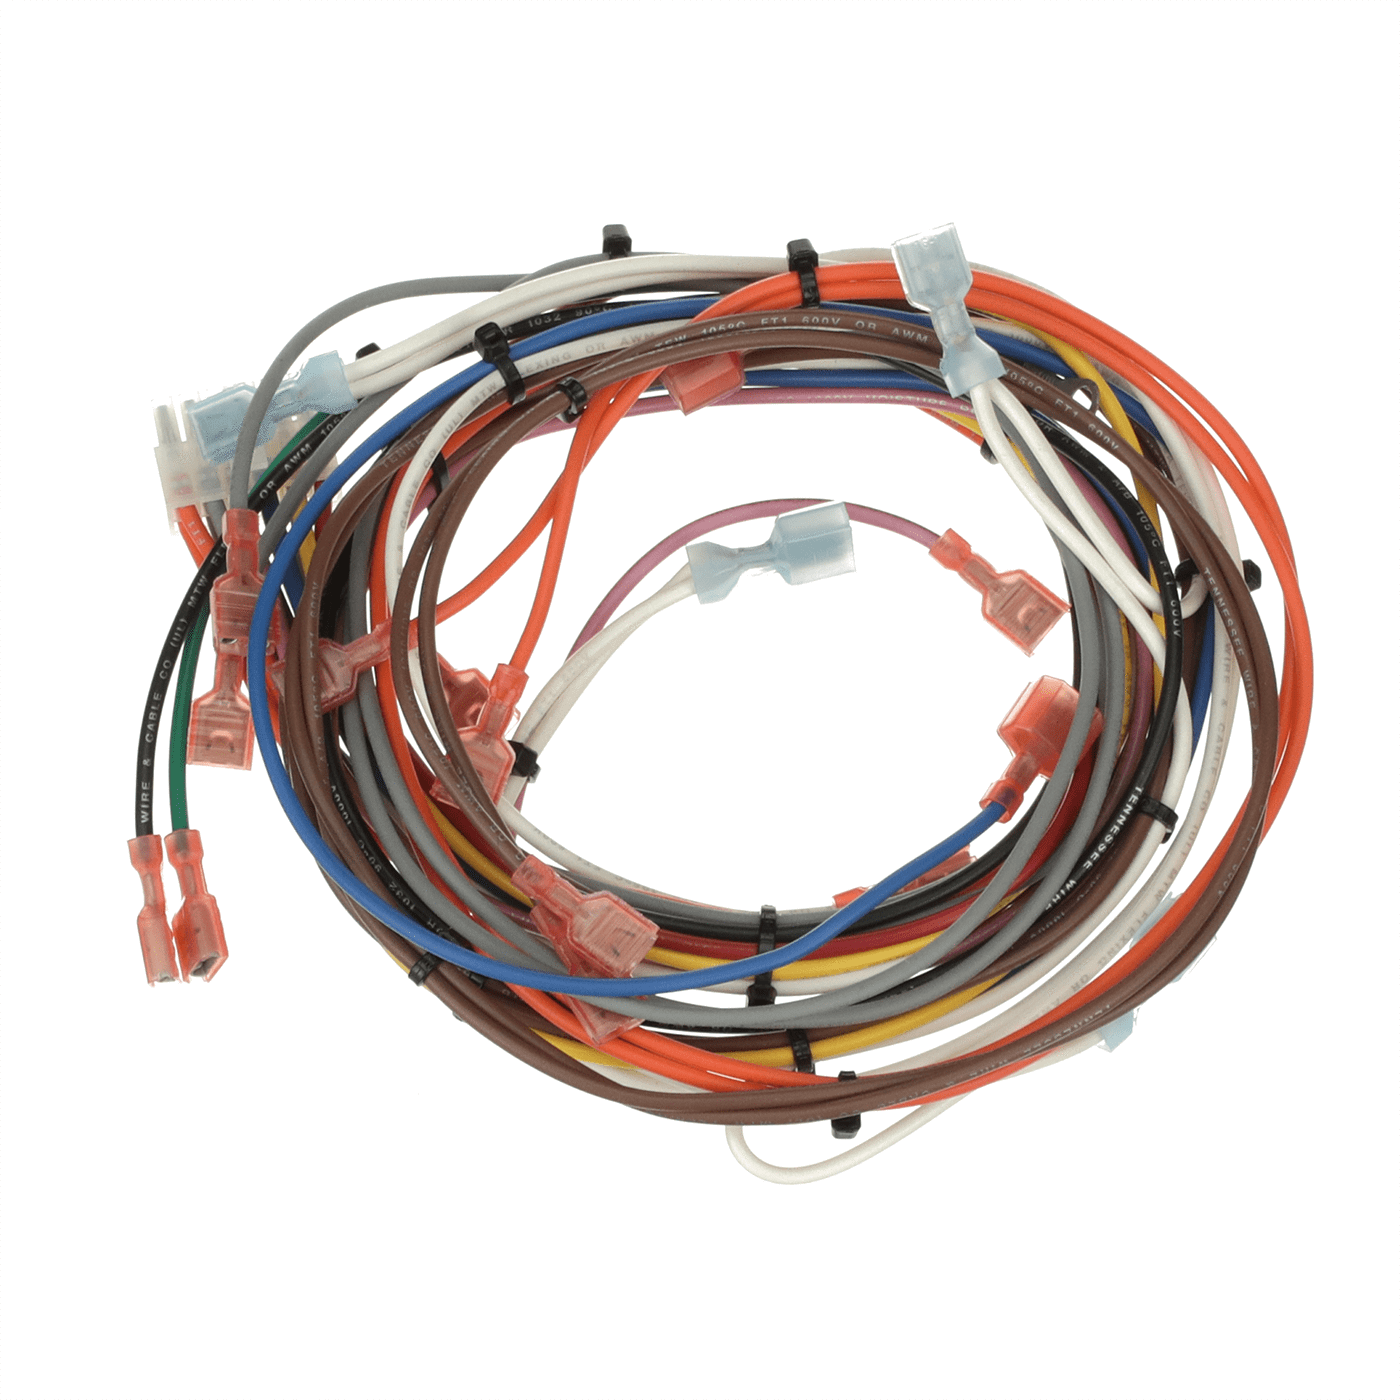 Breckwell Universal Wire Harness For Digital Boards C E Uh1000 Stove Parts 4 Less